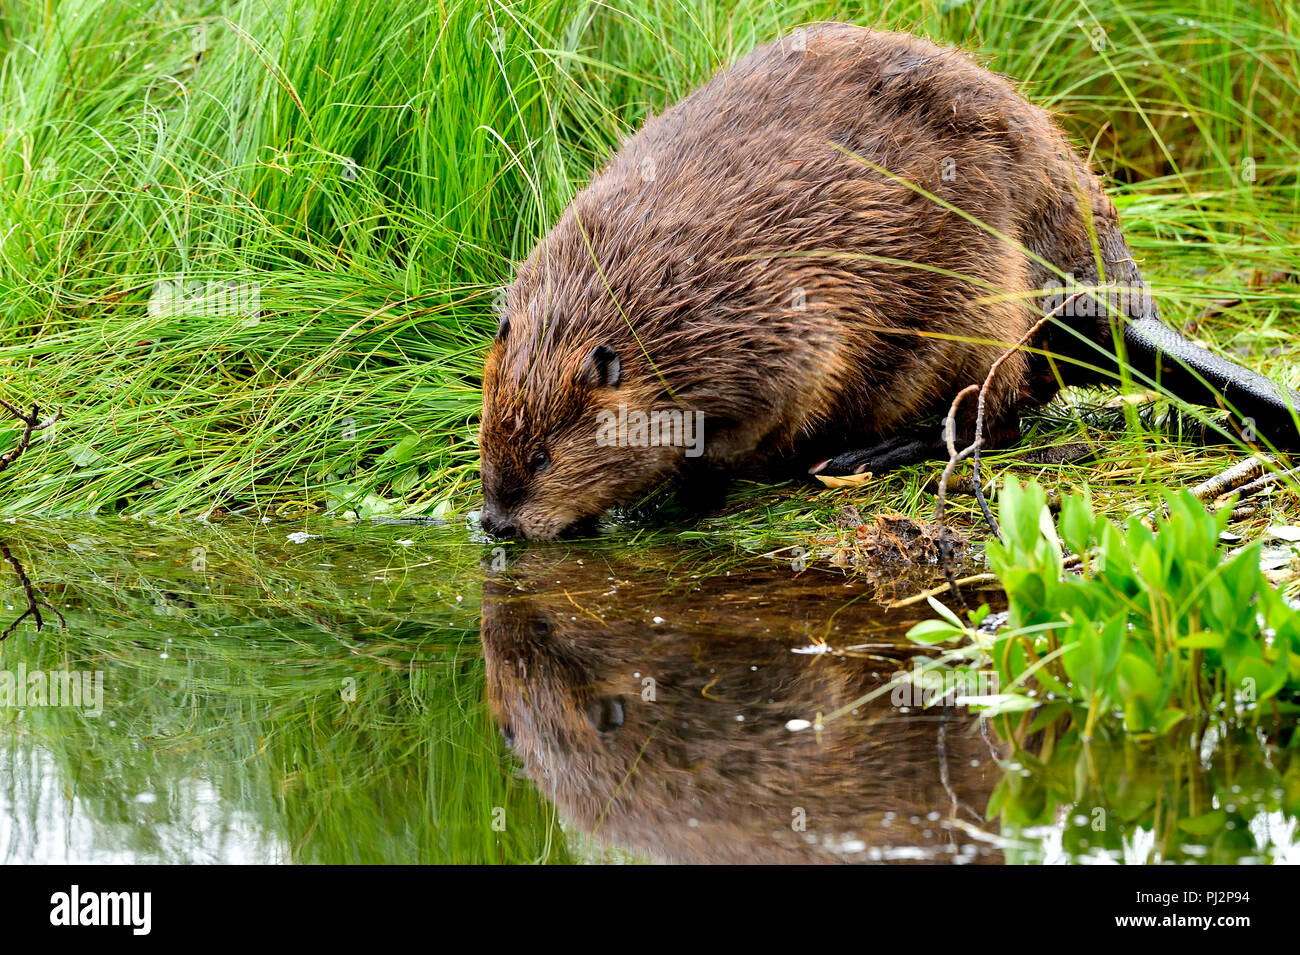 A beaver  'Castor canadenis'; on the shore looking at his facial reflection in the calm water of his beaver pond. - Stock Image